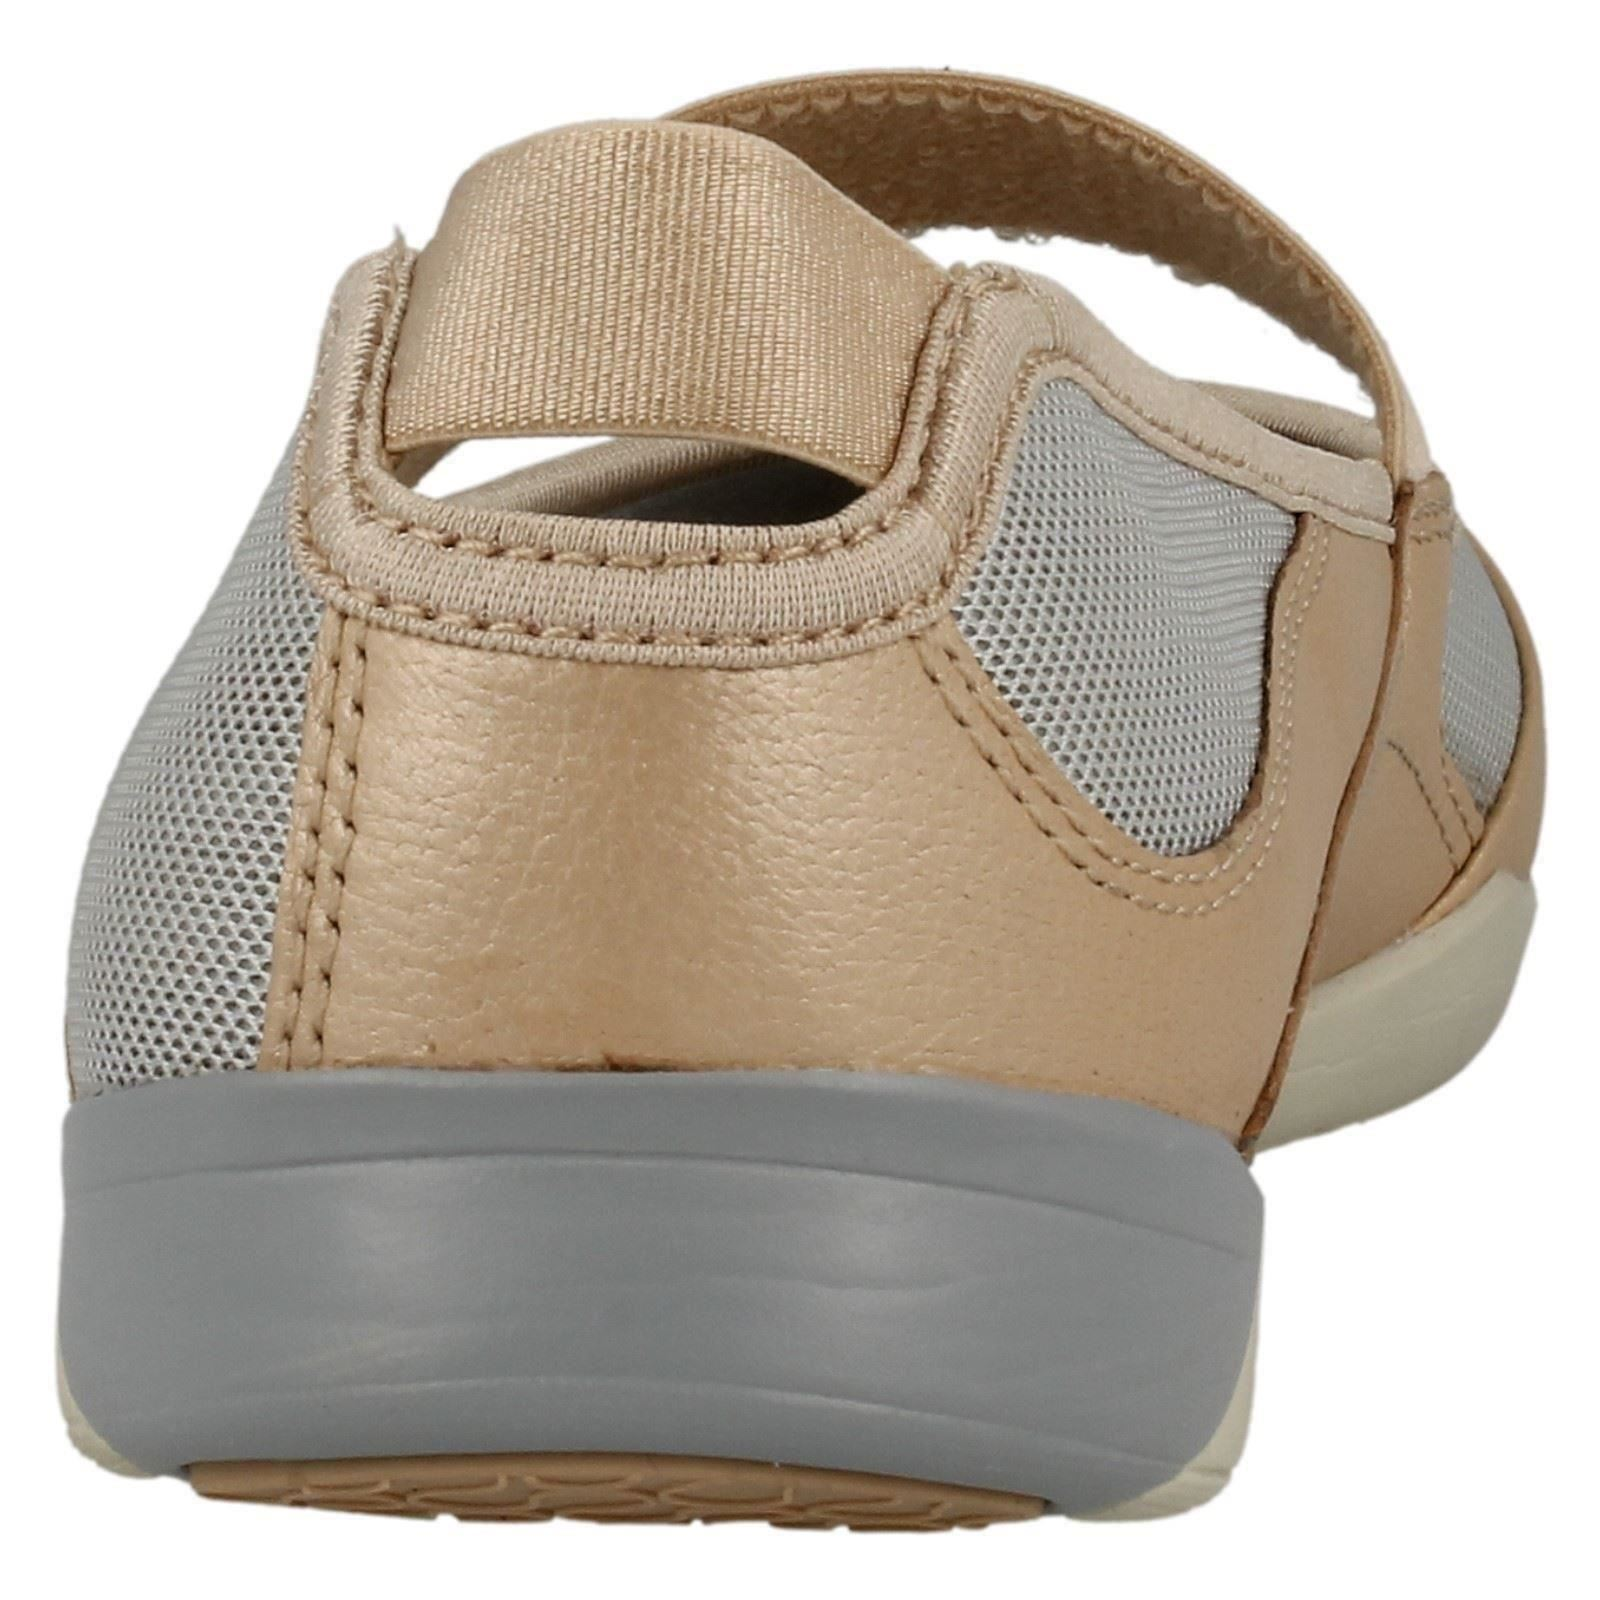 Clarks 'Amorie Dance' Ladies Grey Shoes for Studio Activies/Exercise shoes